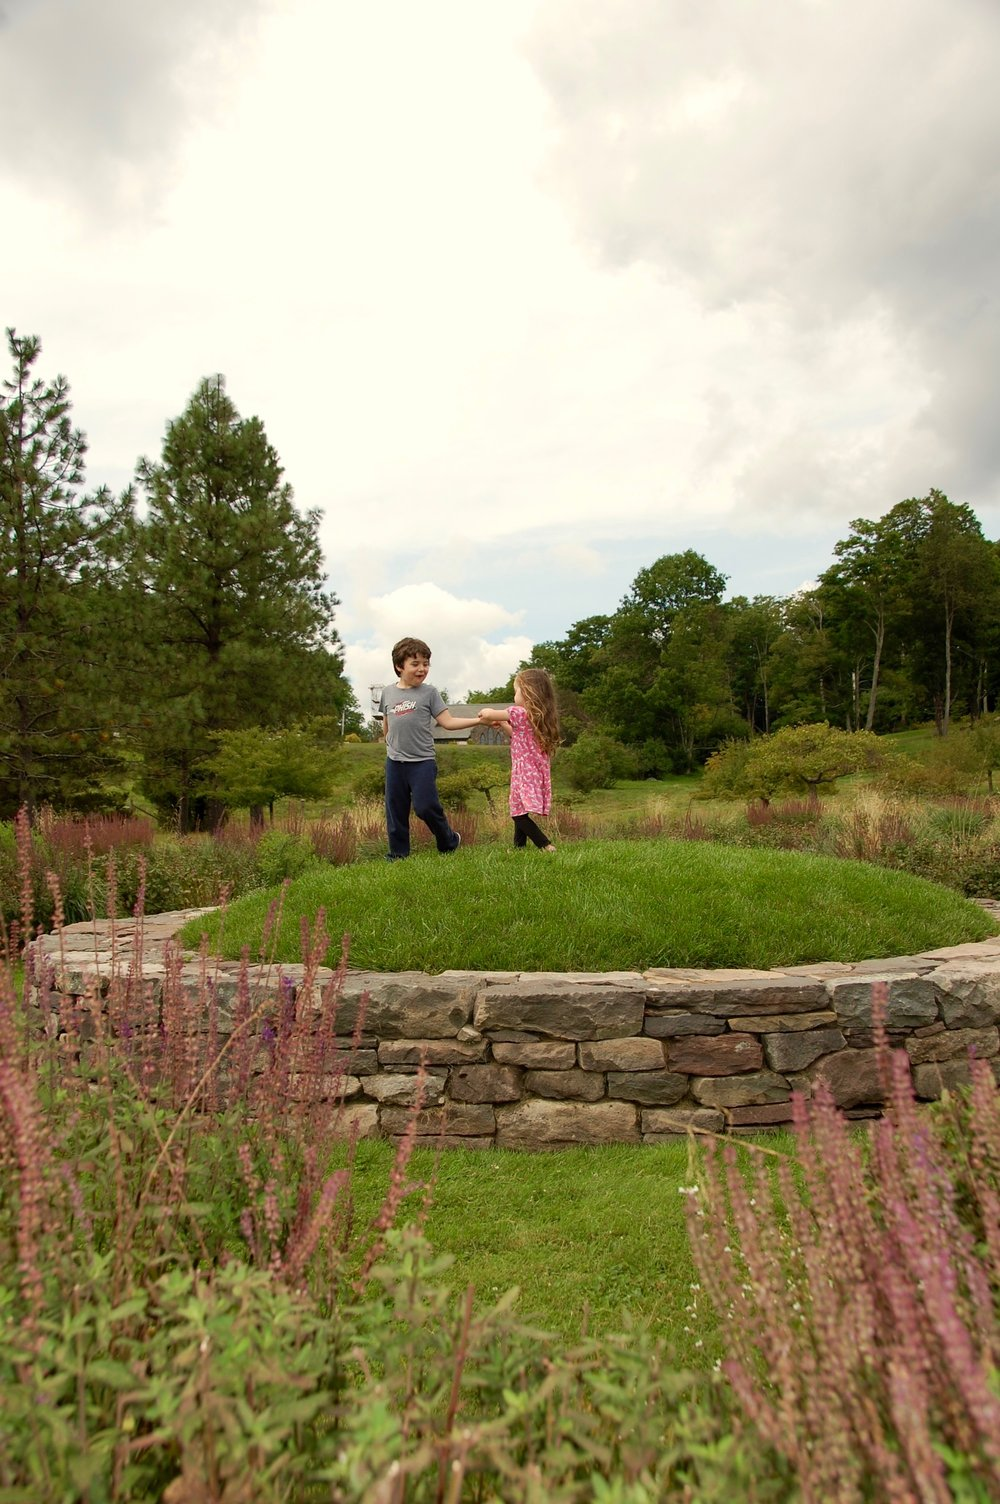 mountaintop arboretum kid-friendly